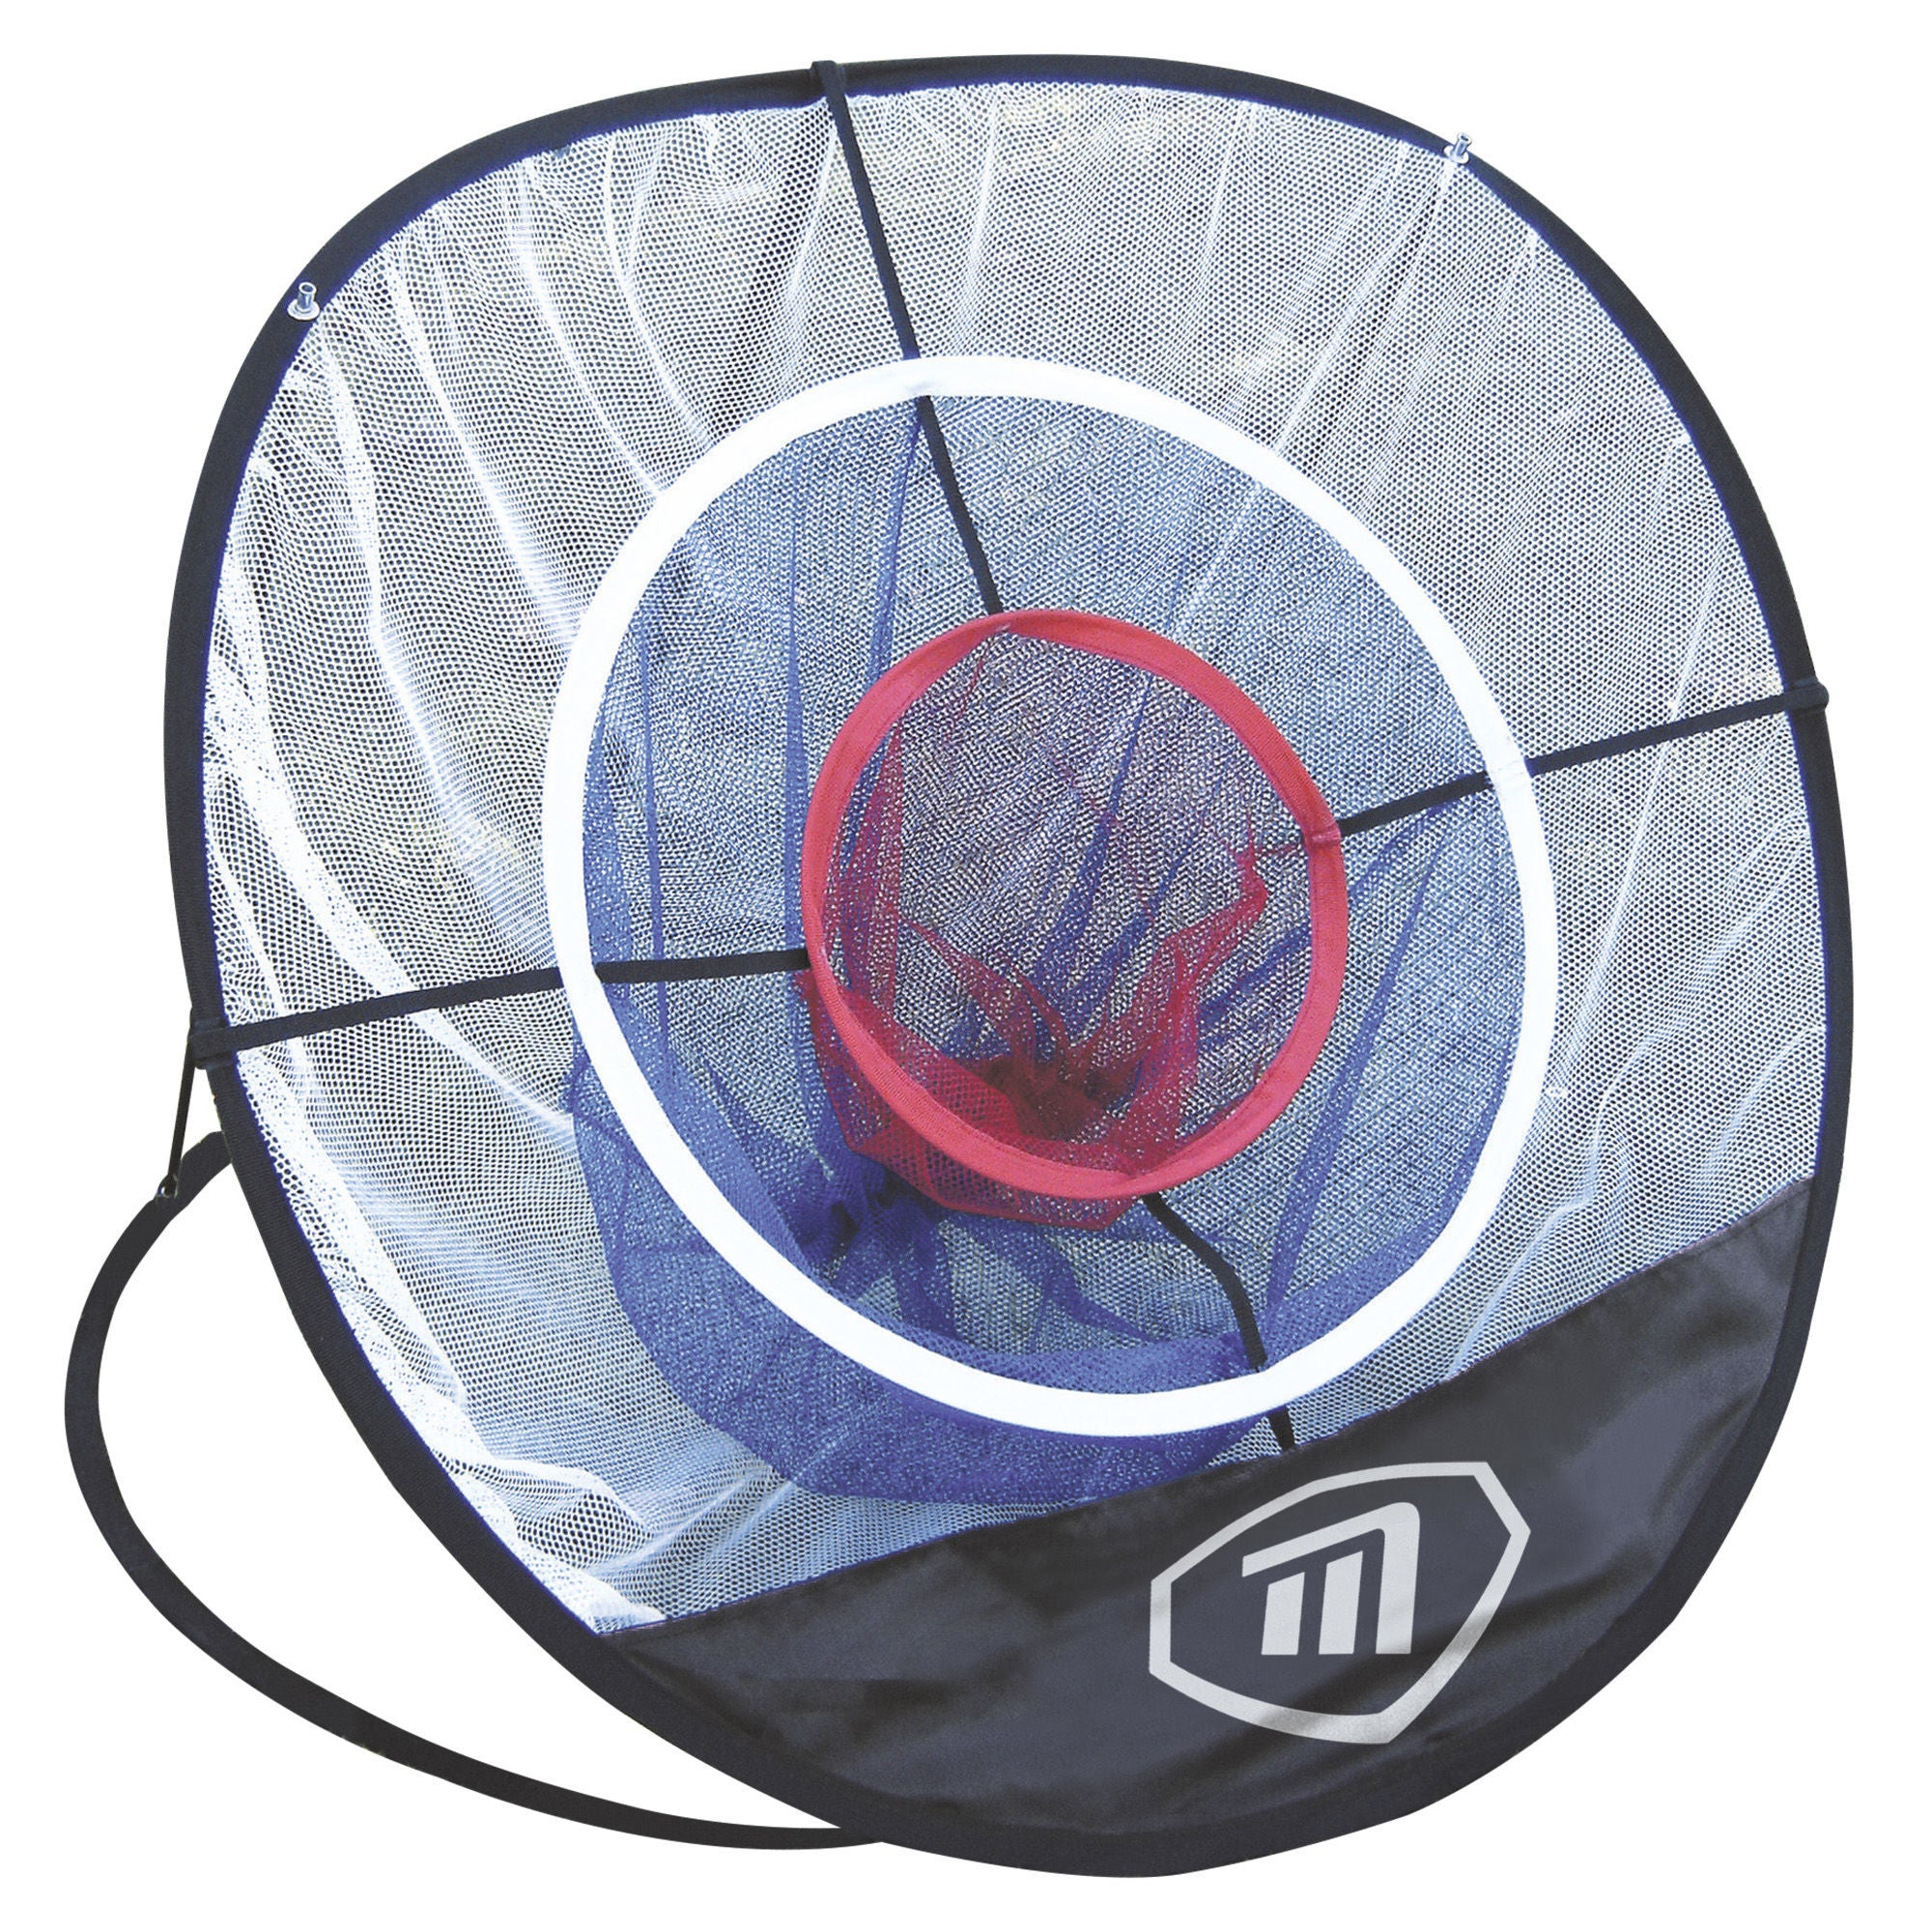 Pop Up Chipping Target Net - Putterfingers.com